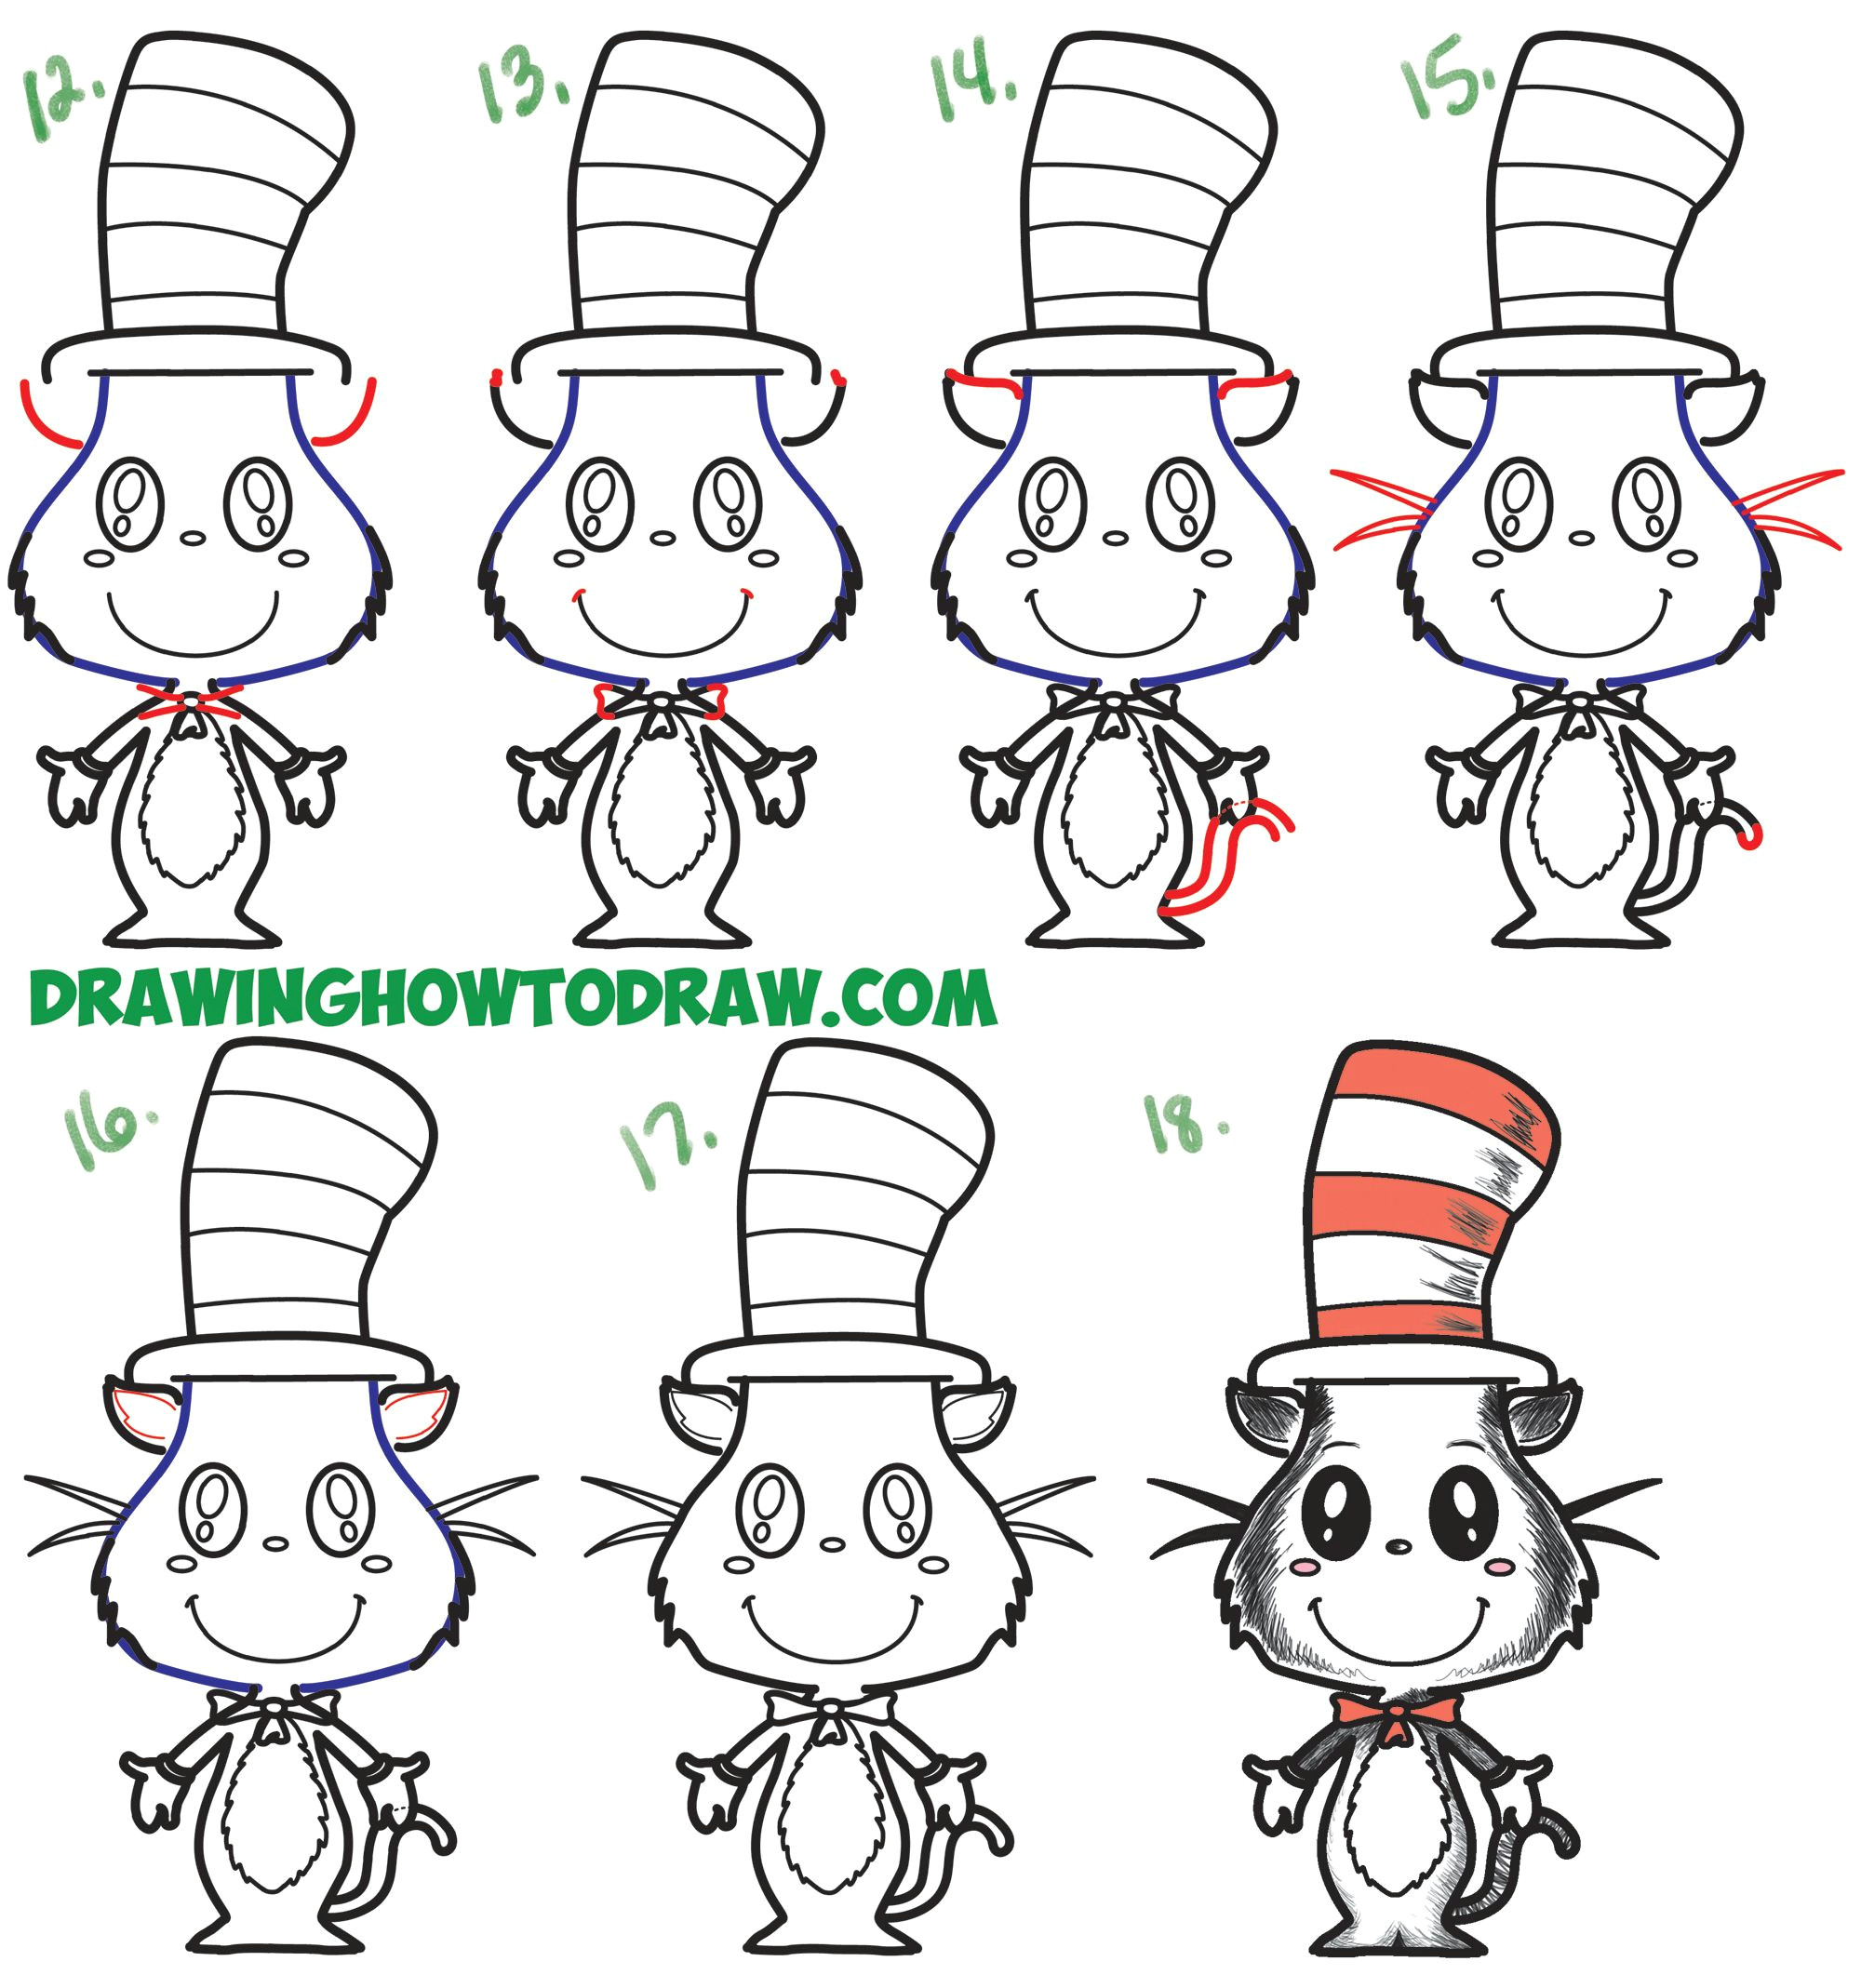 learn how to draw the cat in the hat cute kawaii chibi version simple steps drawing lesson for beginners